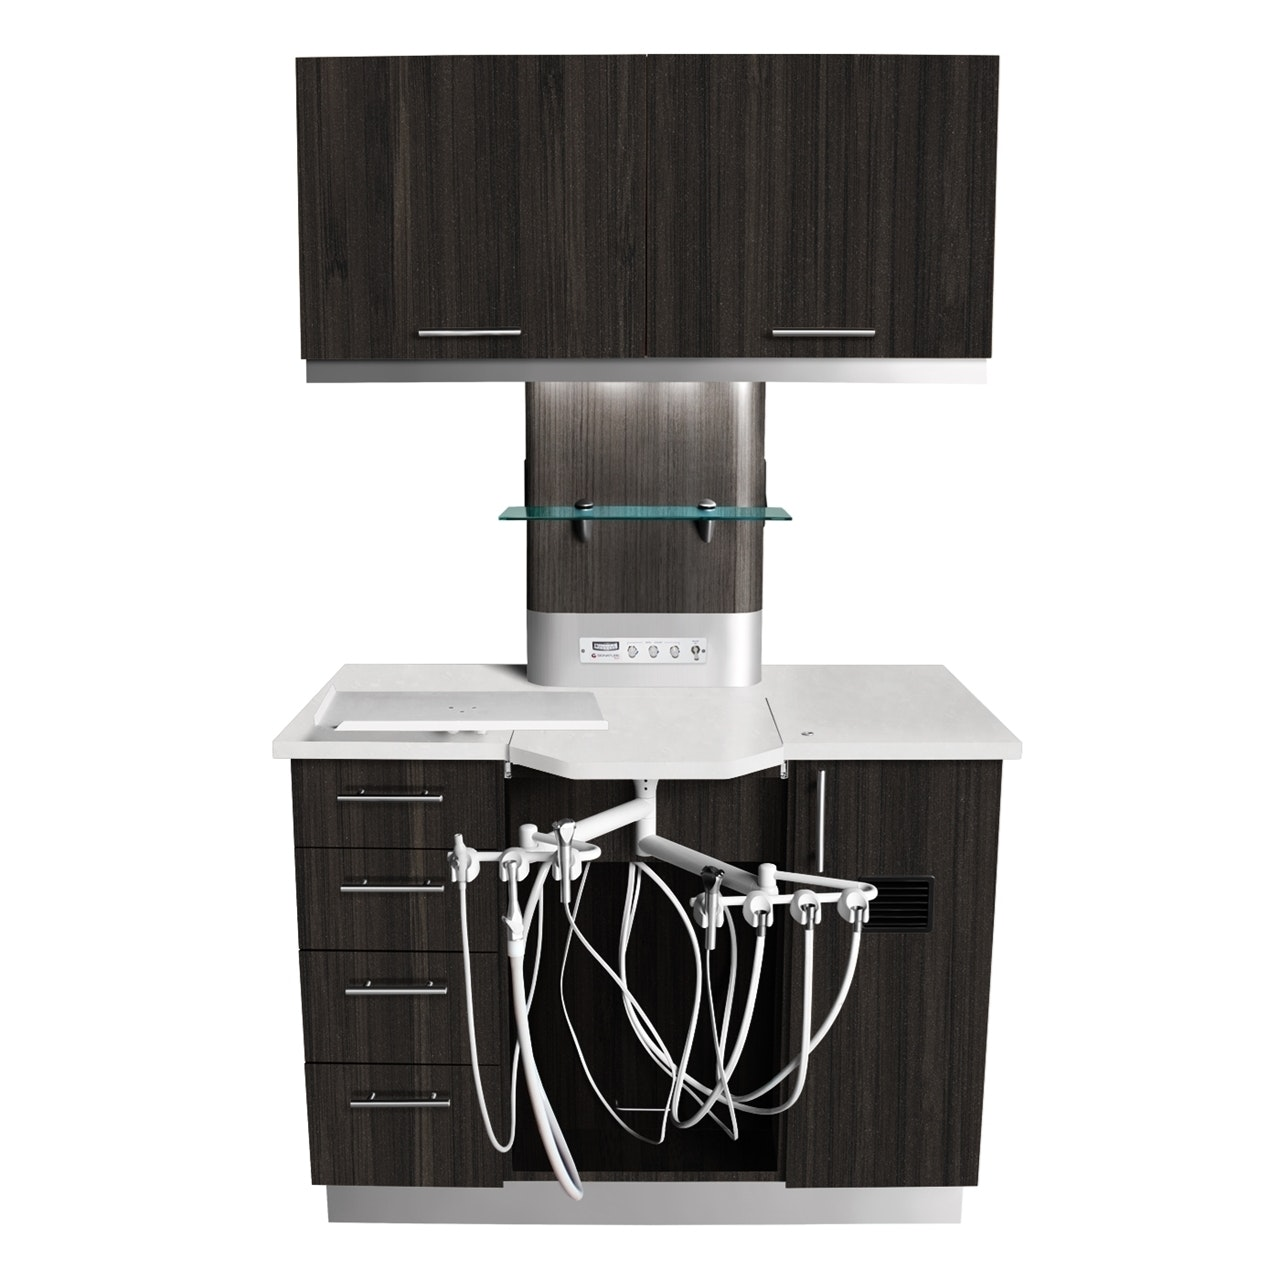 12 O'Clock Rear Cabinet w/ 3069 Delivery System - Signature Series